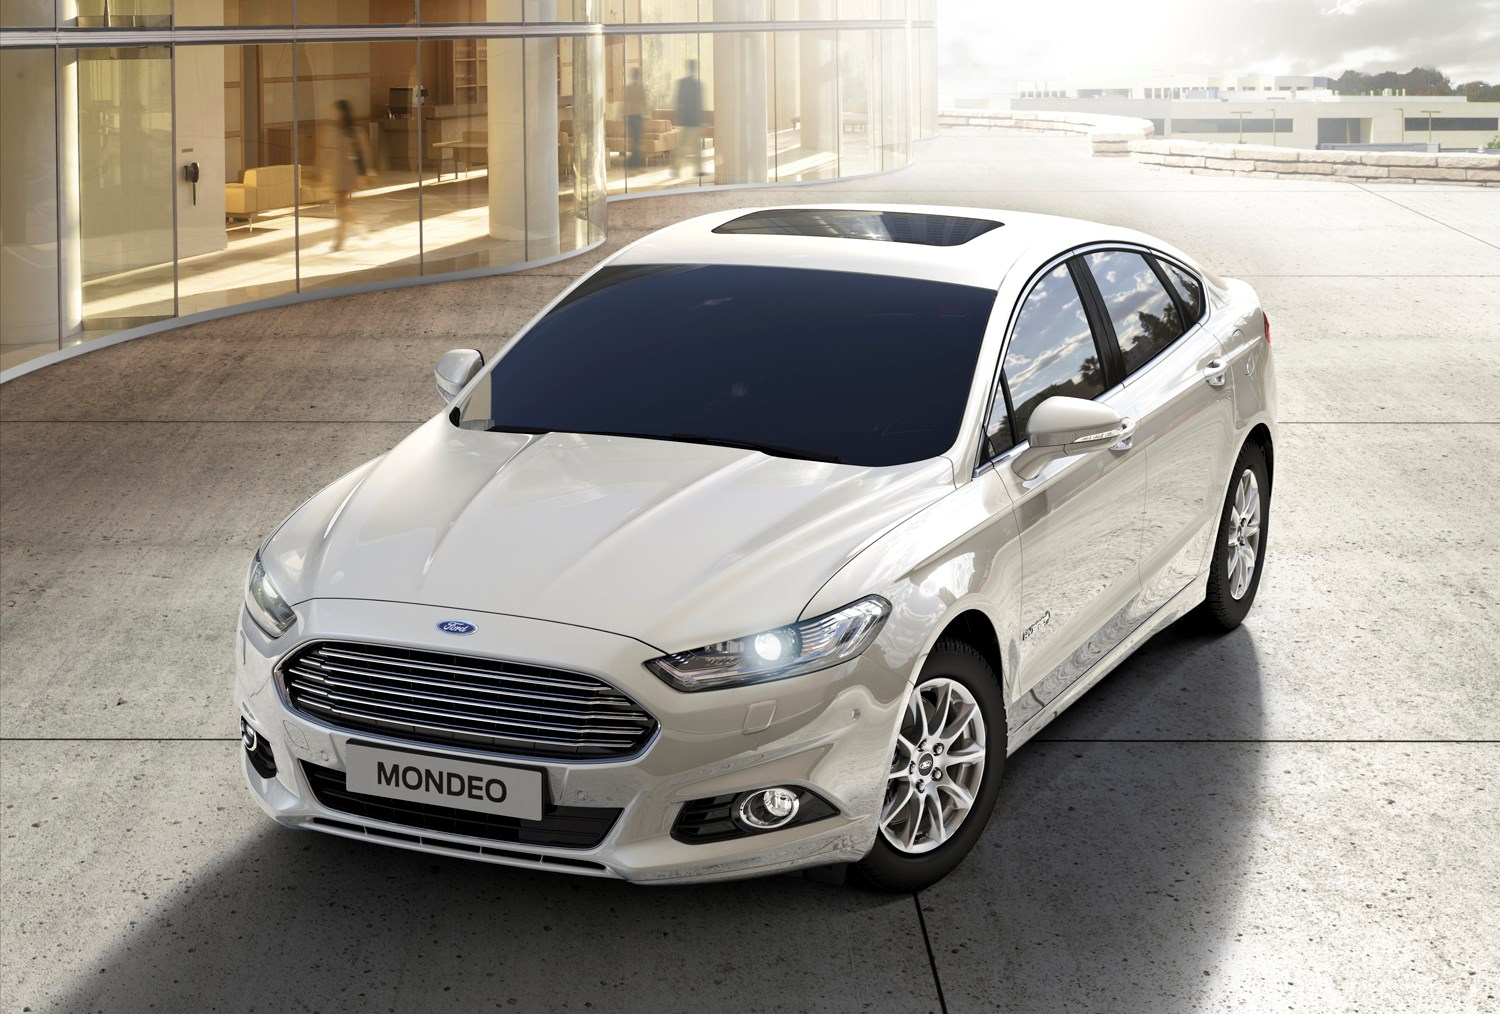 ford mondeo saloon review 2019 parkers. Black Bedroom Furniture Sets. Home Design Ideas